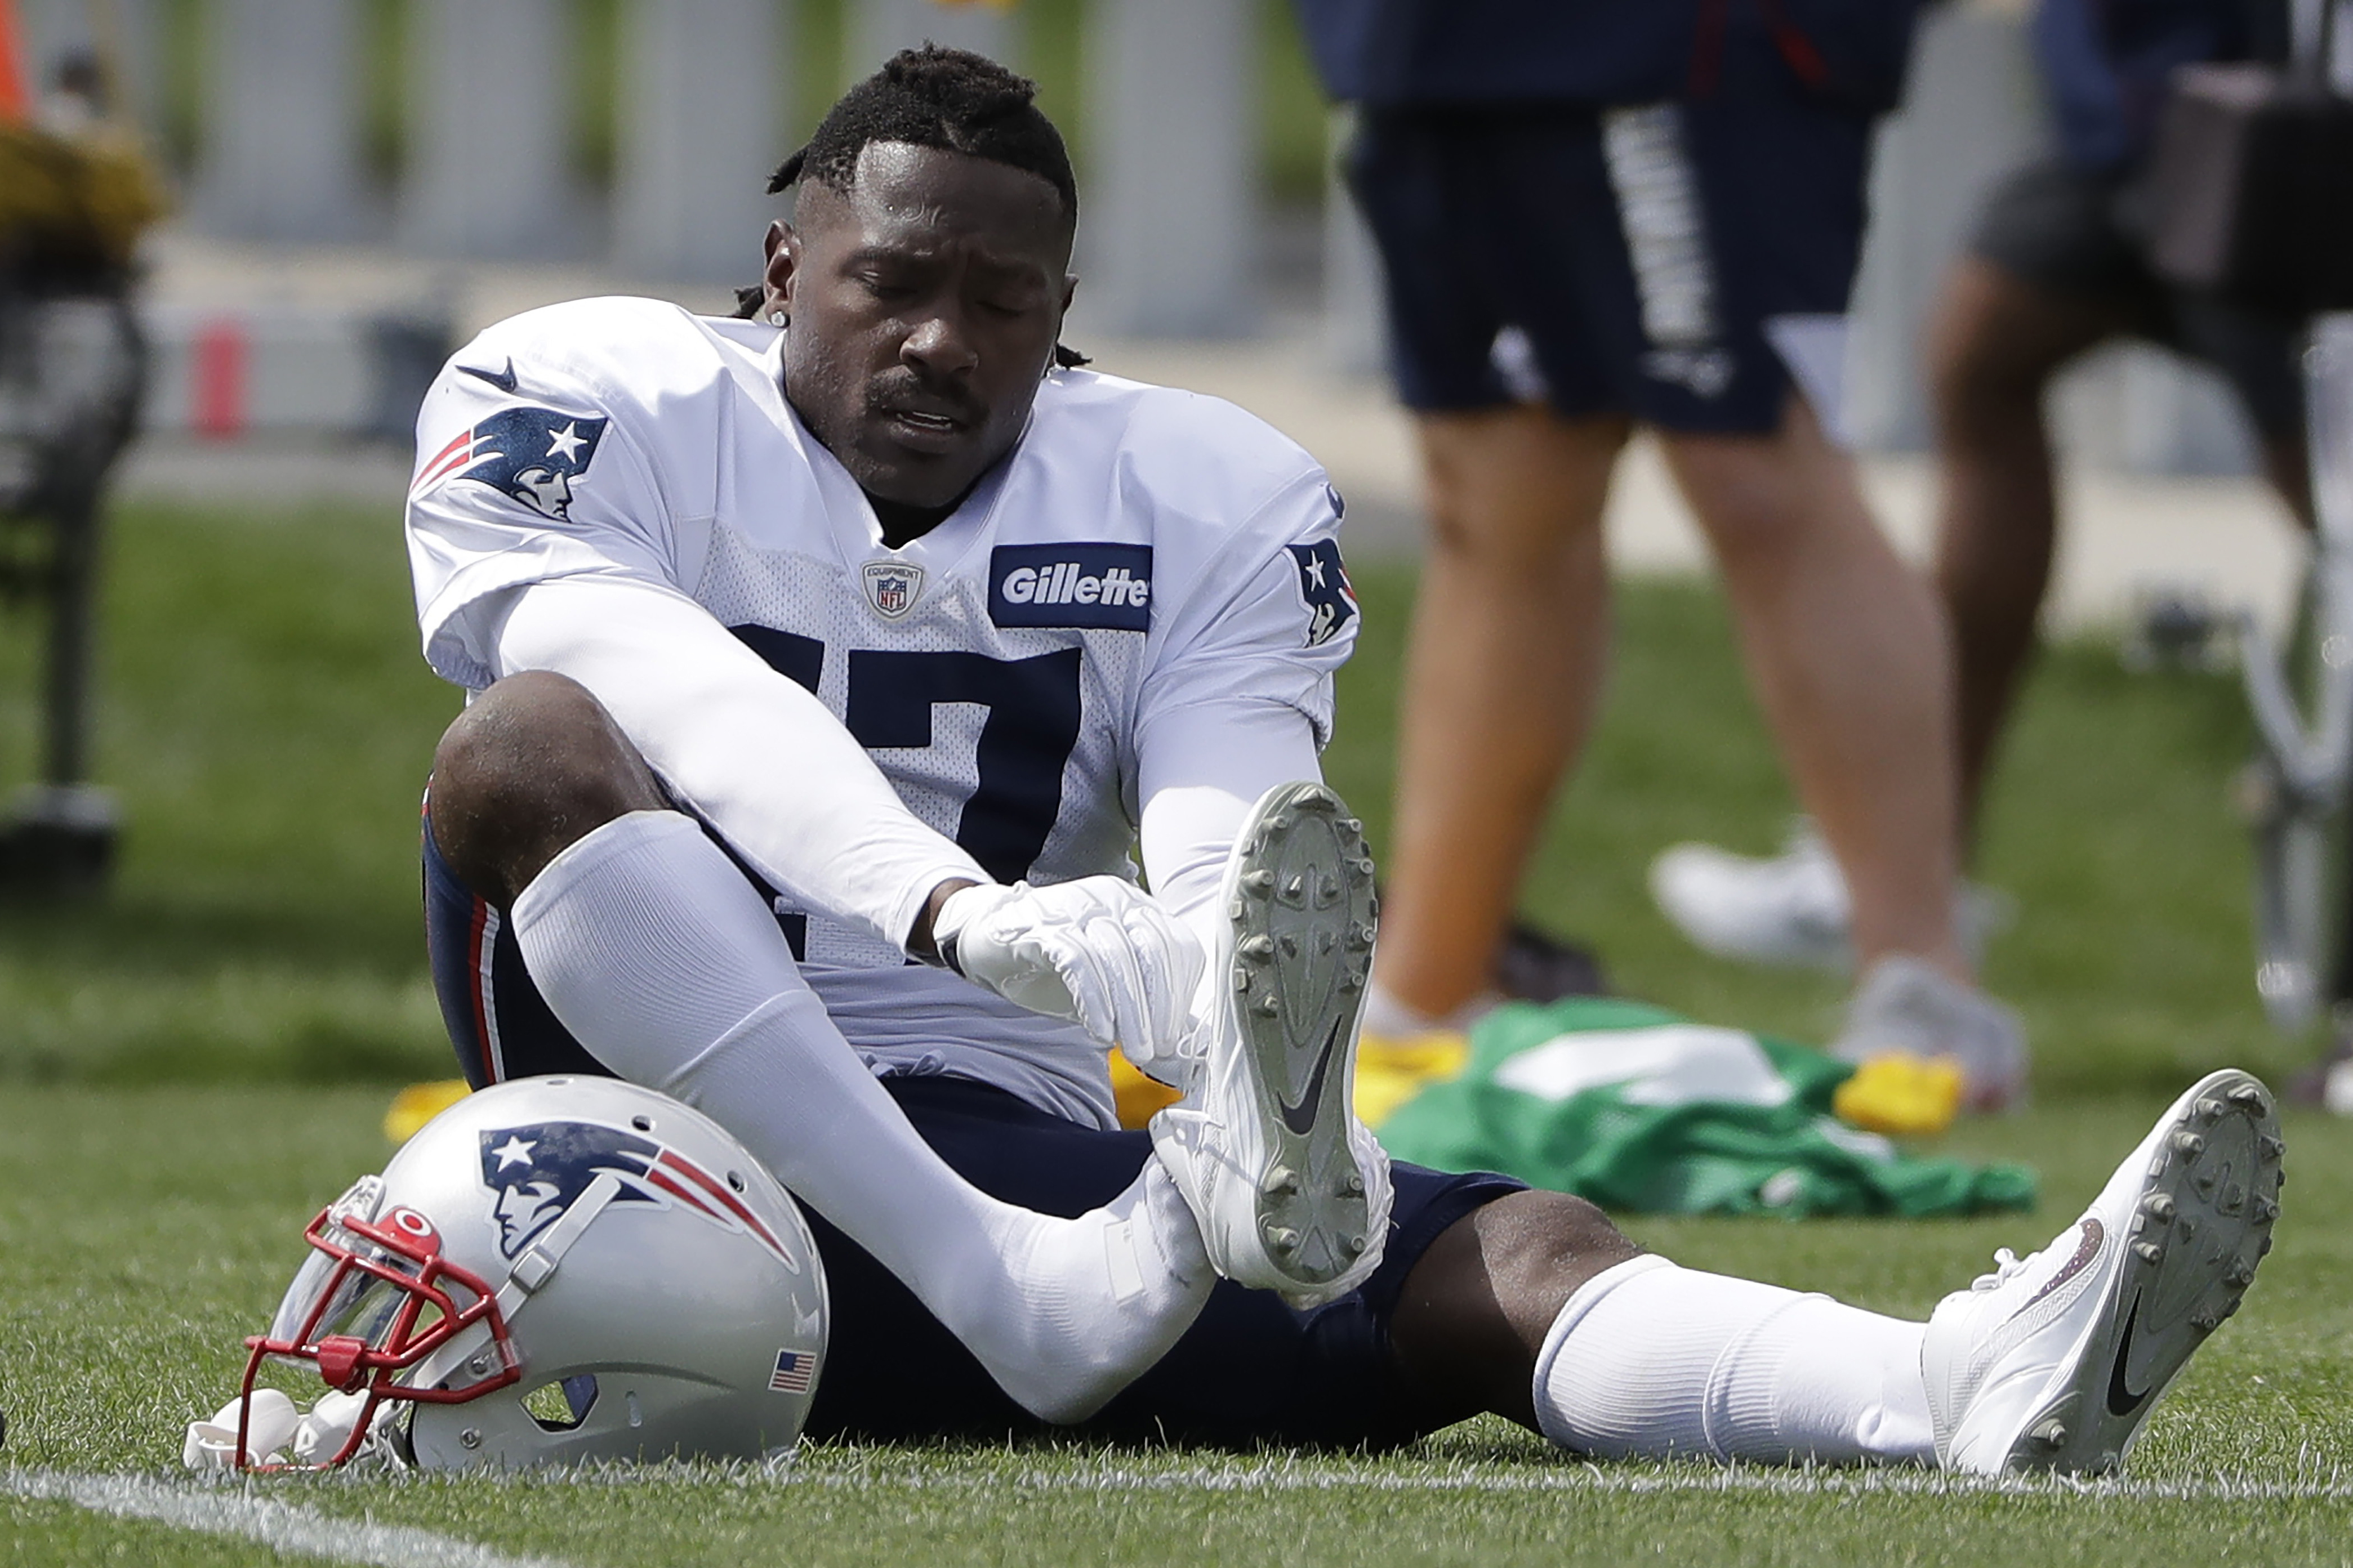 Twitter reacts as Patriots release WR Antonio Brown | 'Right thing to do'